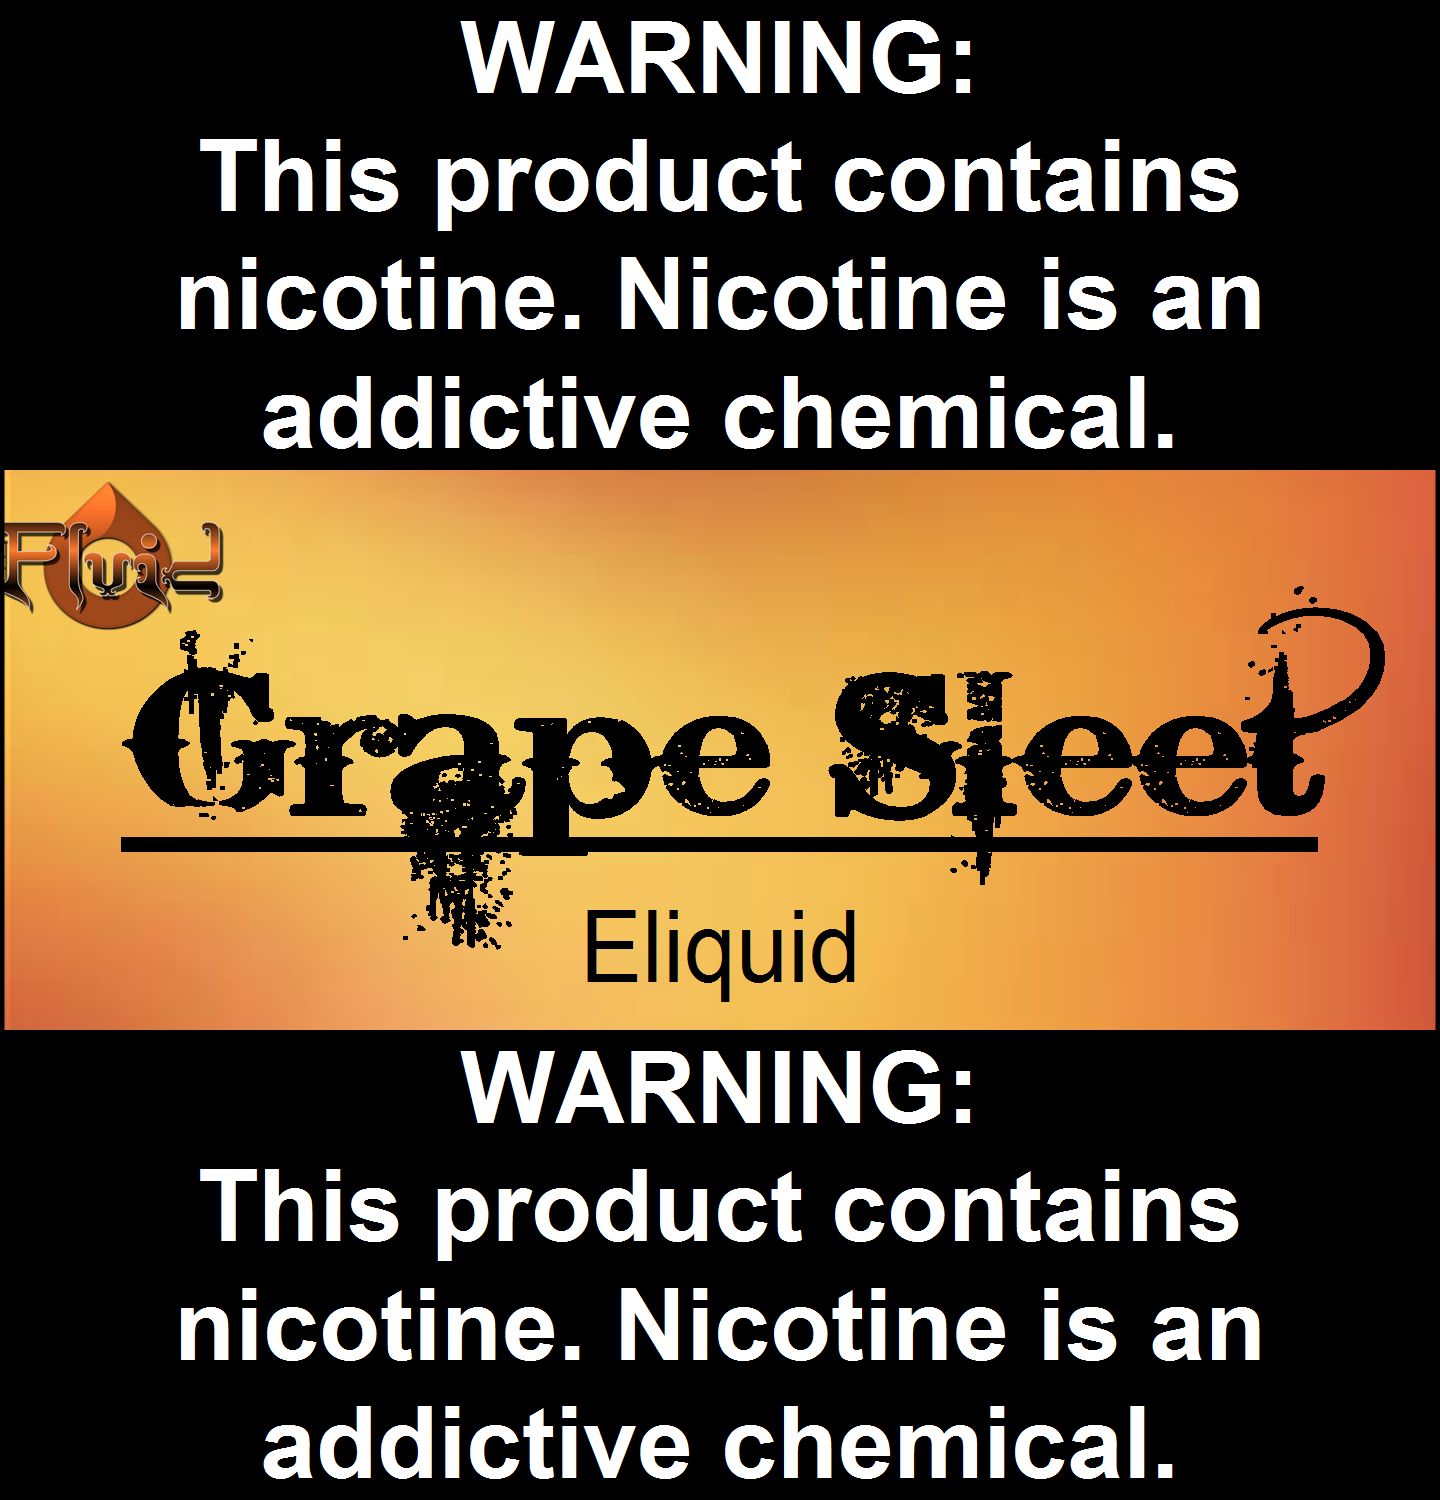 Grape Sleet Eliquid